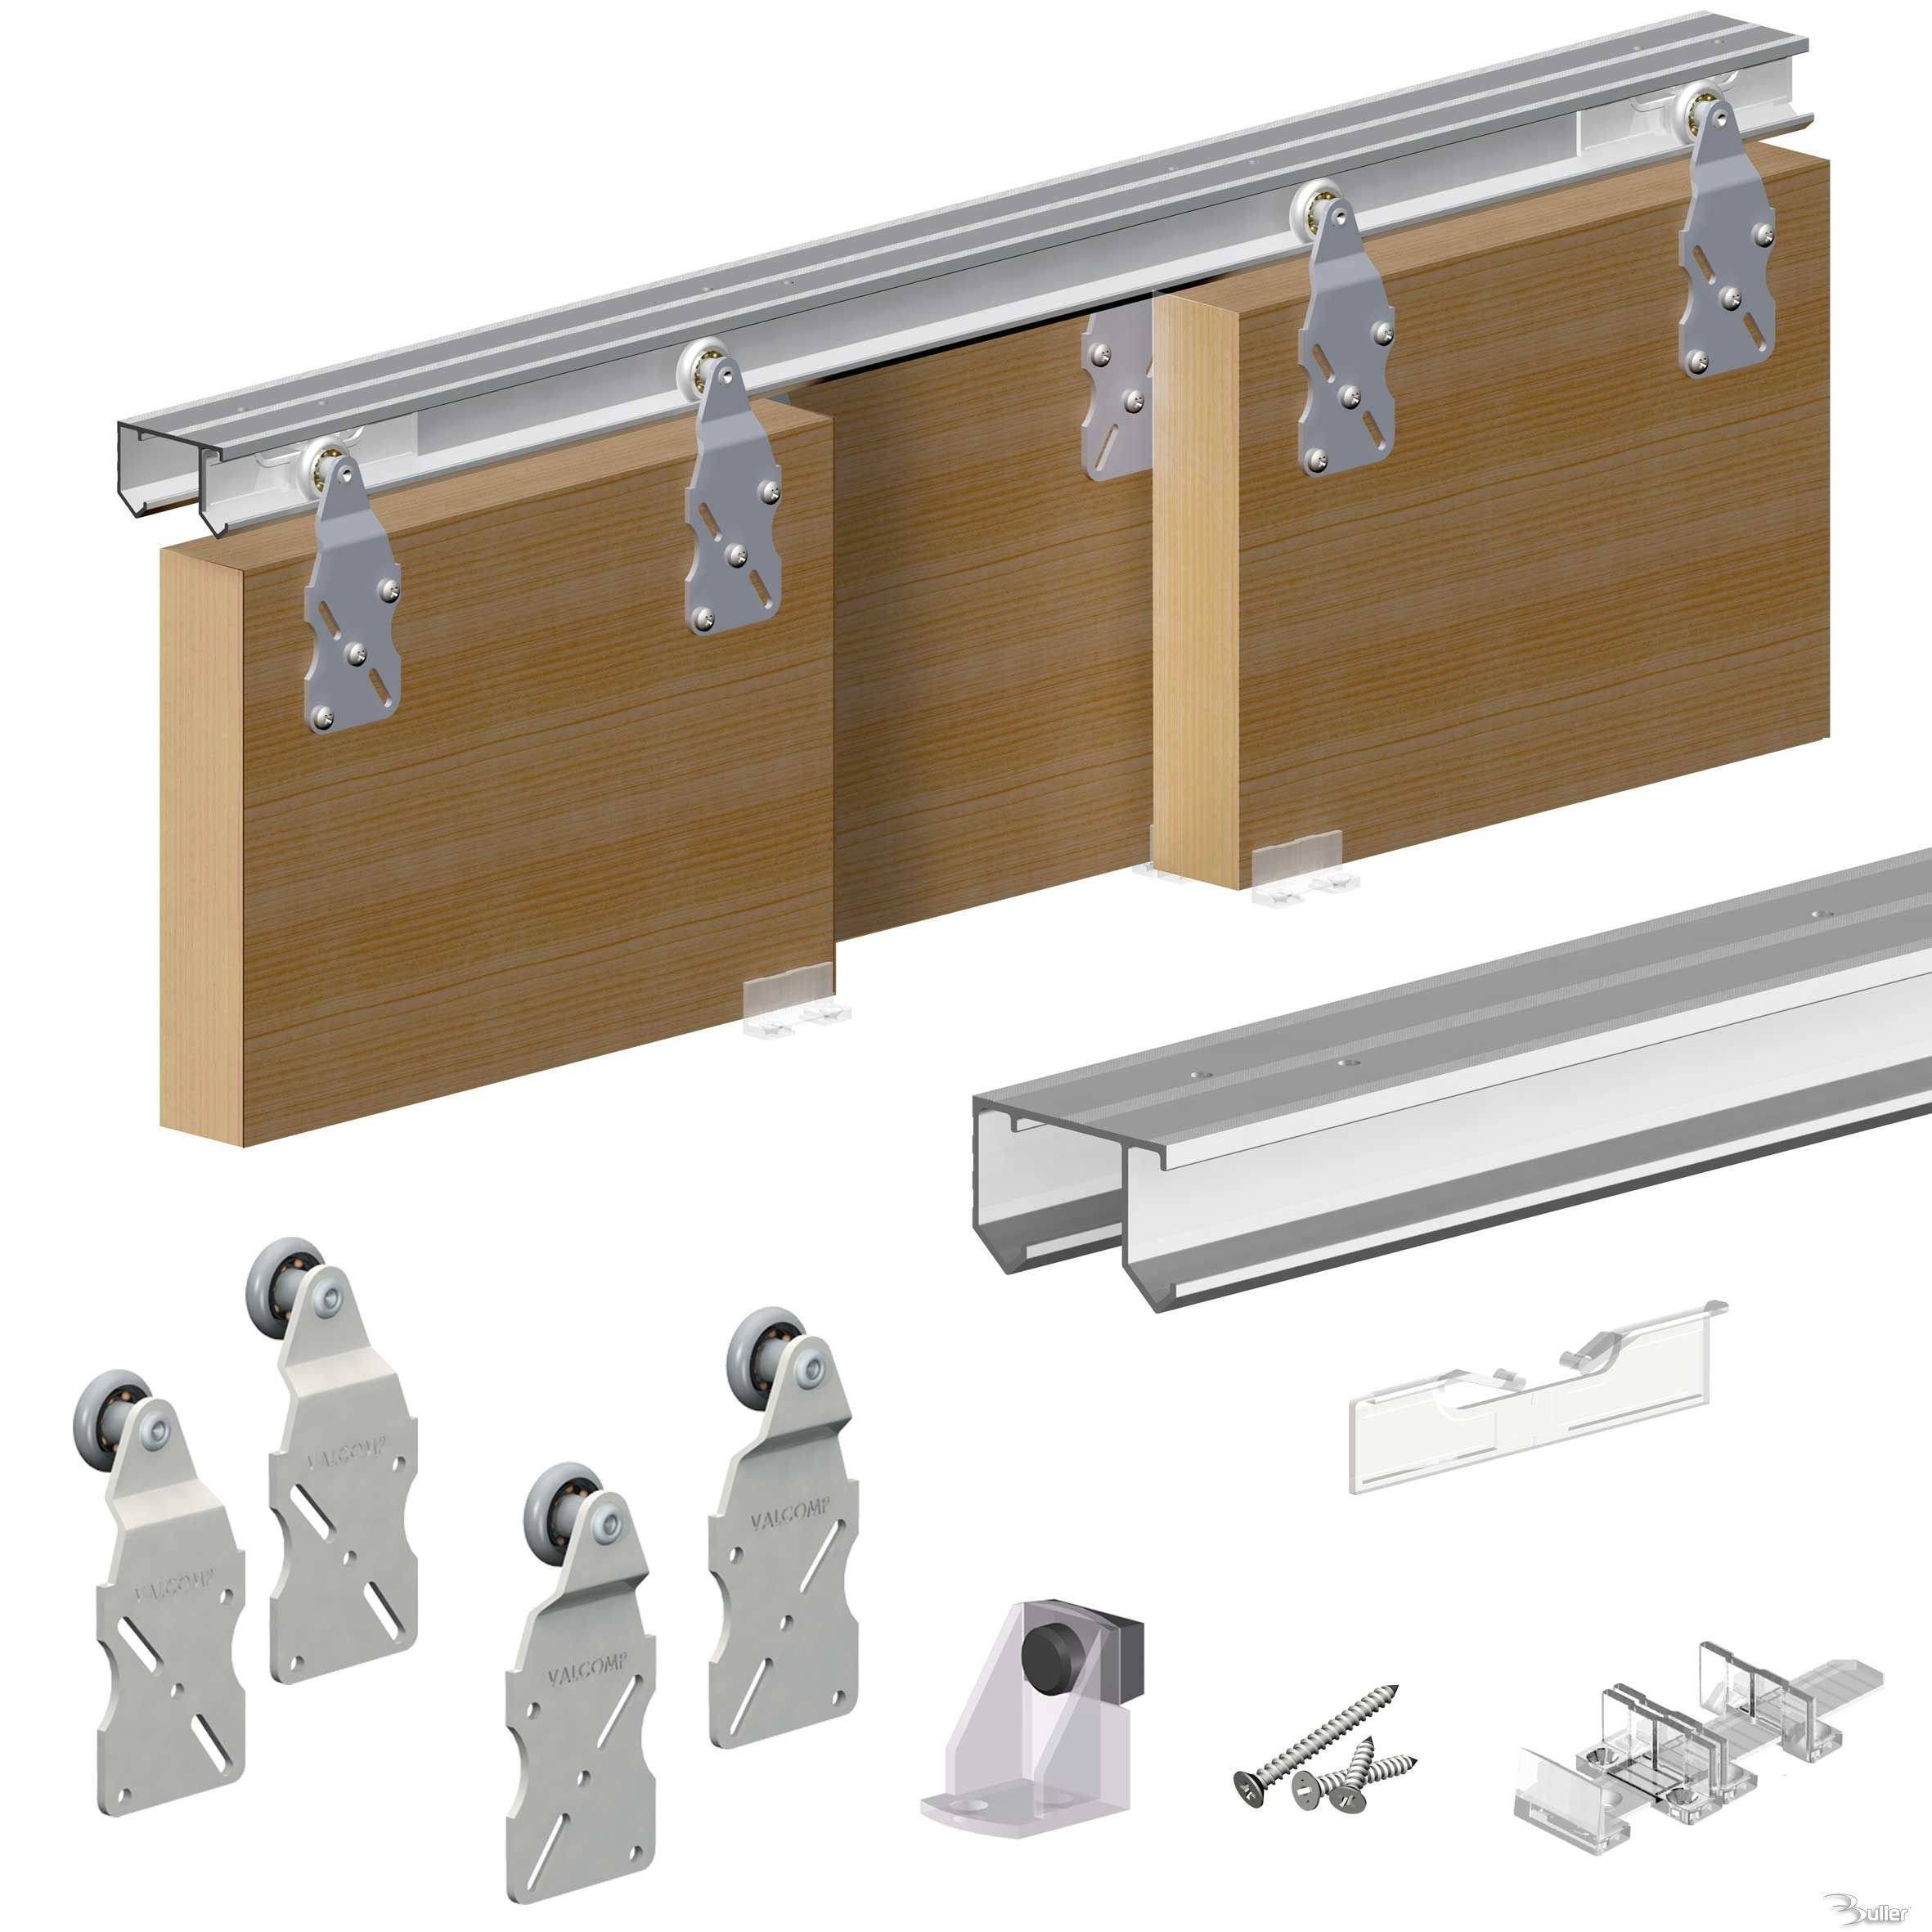 Horus Top Hung Sliding Door System Wardrobe Track Kit : HorusaccessoriesMain New ideacyst rs from www.bullerltd.co.uk size 2362 x 2362 jpeg 375kB